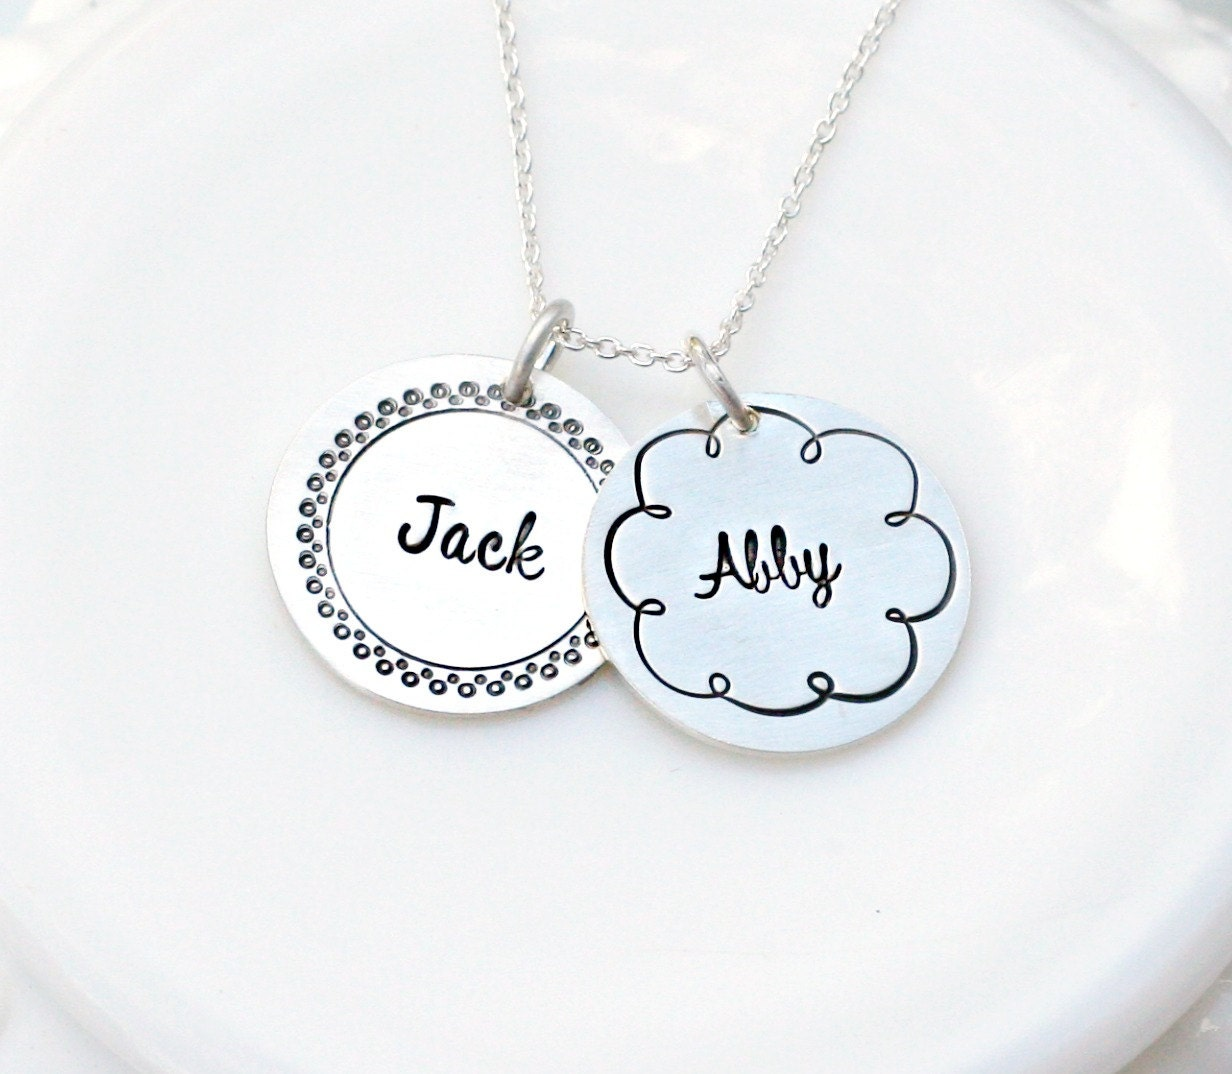 mothers day gift personalized jewelry two name necklace